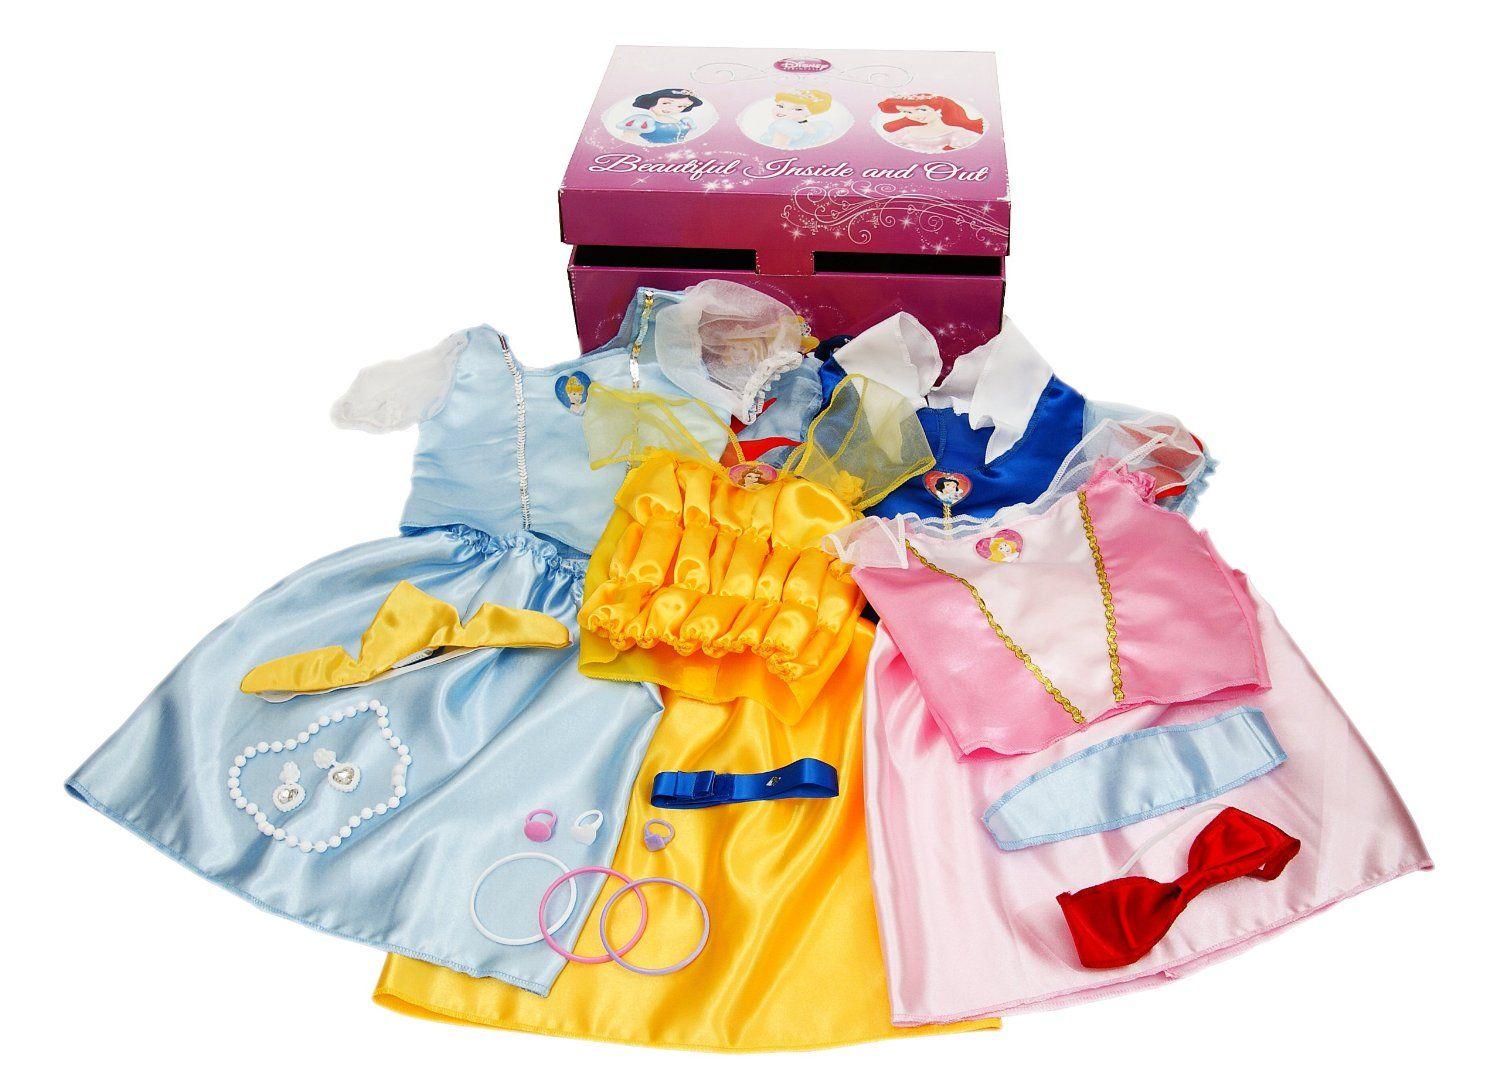 Disney Princess Dress Up Trunk Review | Disney, Dress up and ...